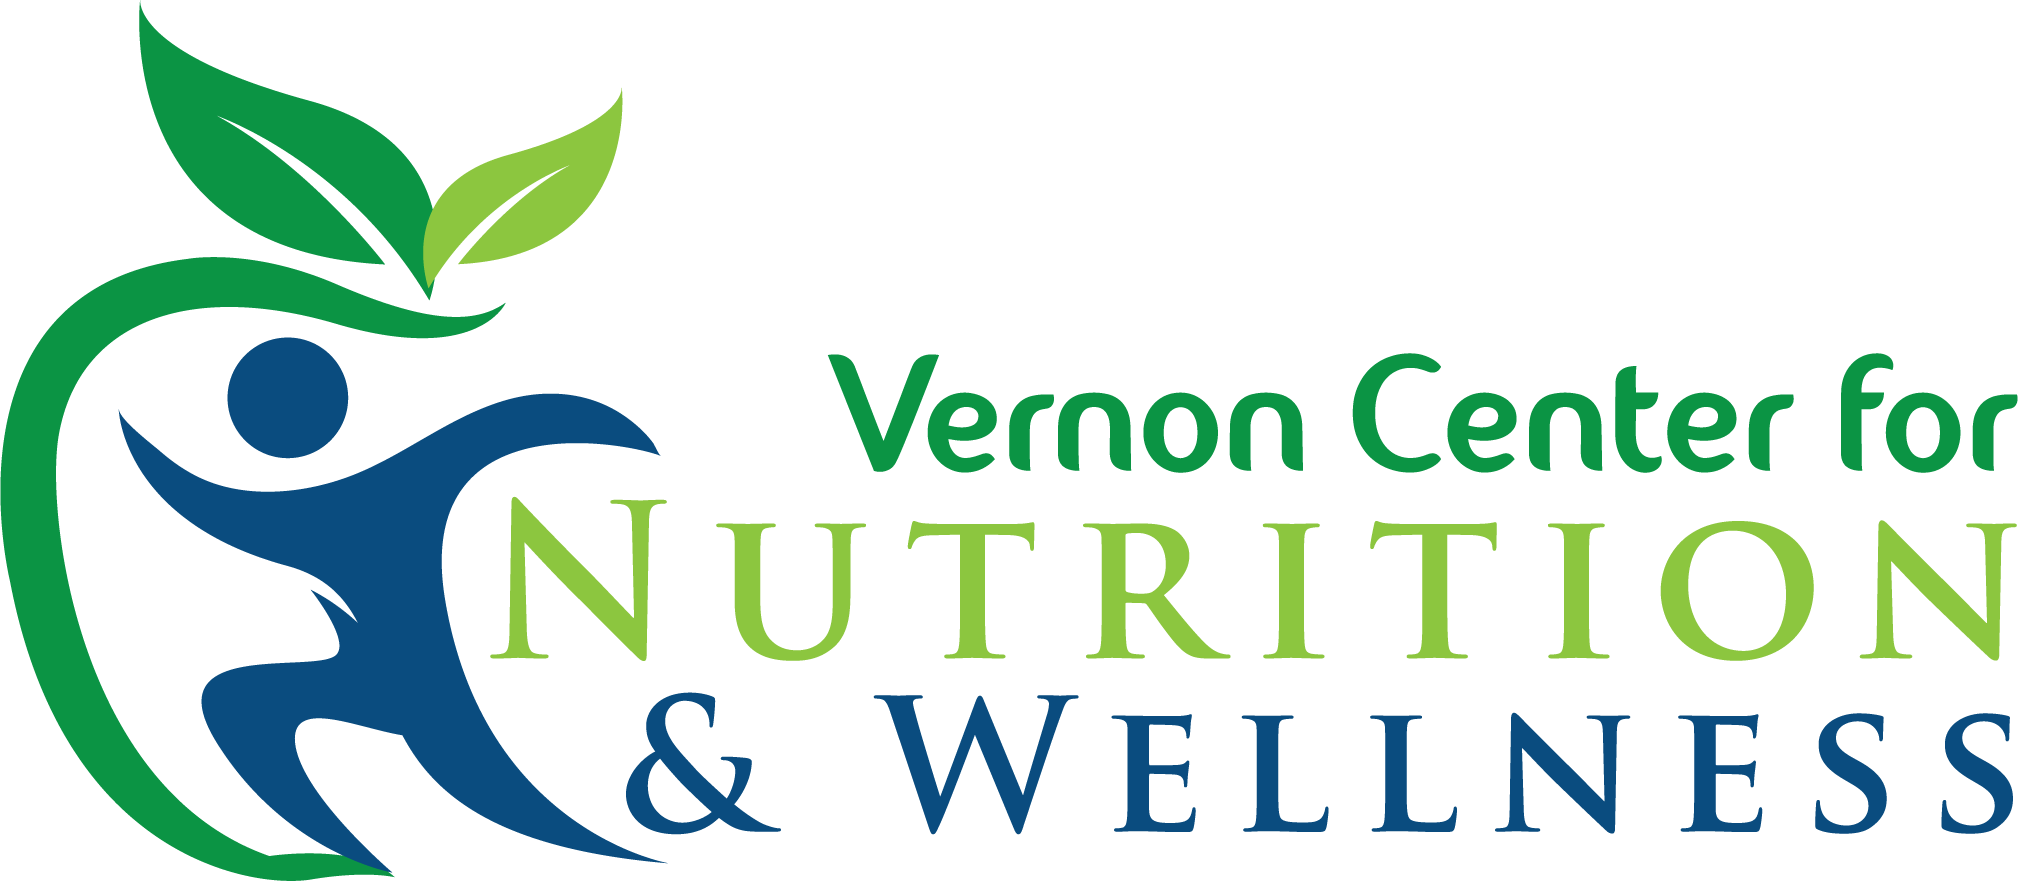 Vernon Center for Nutrition